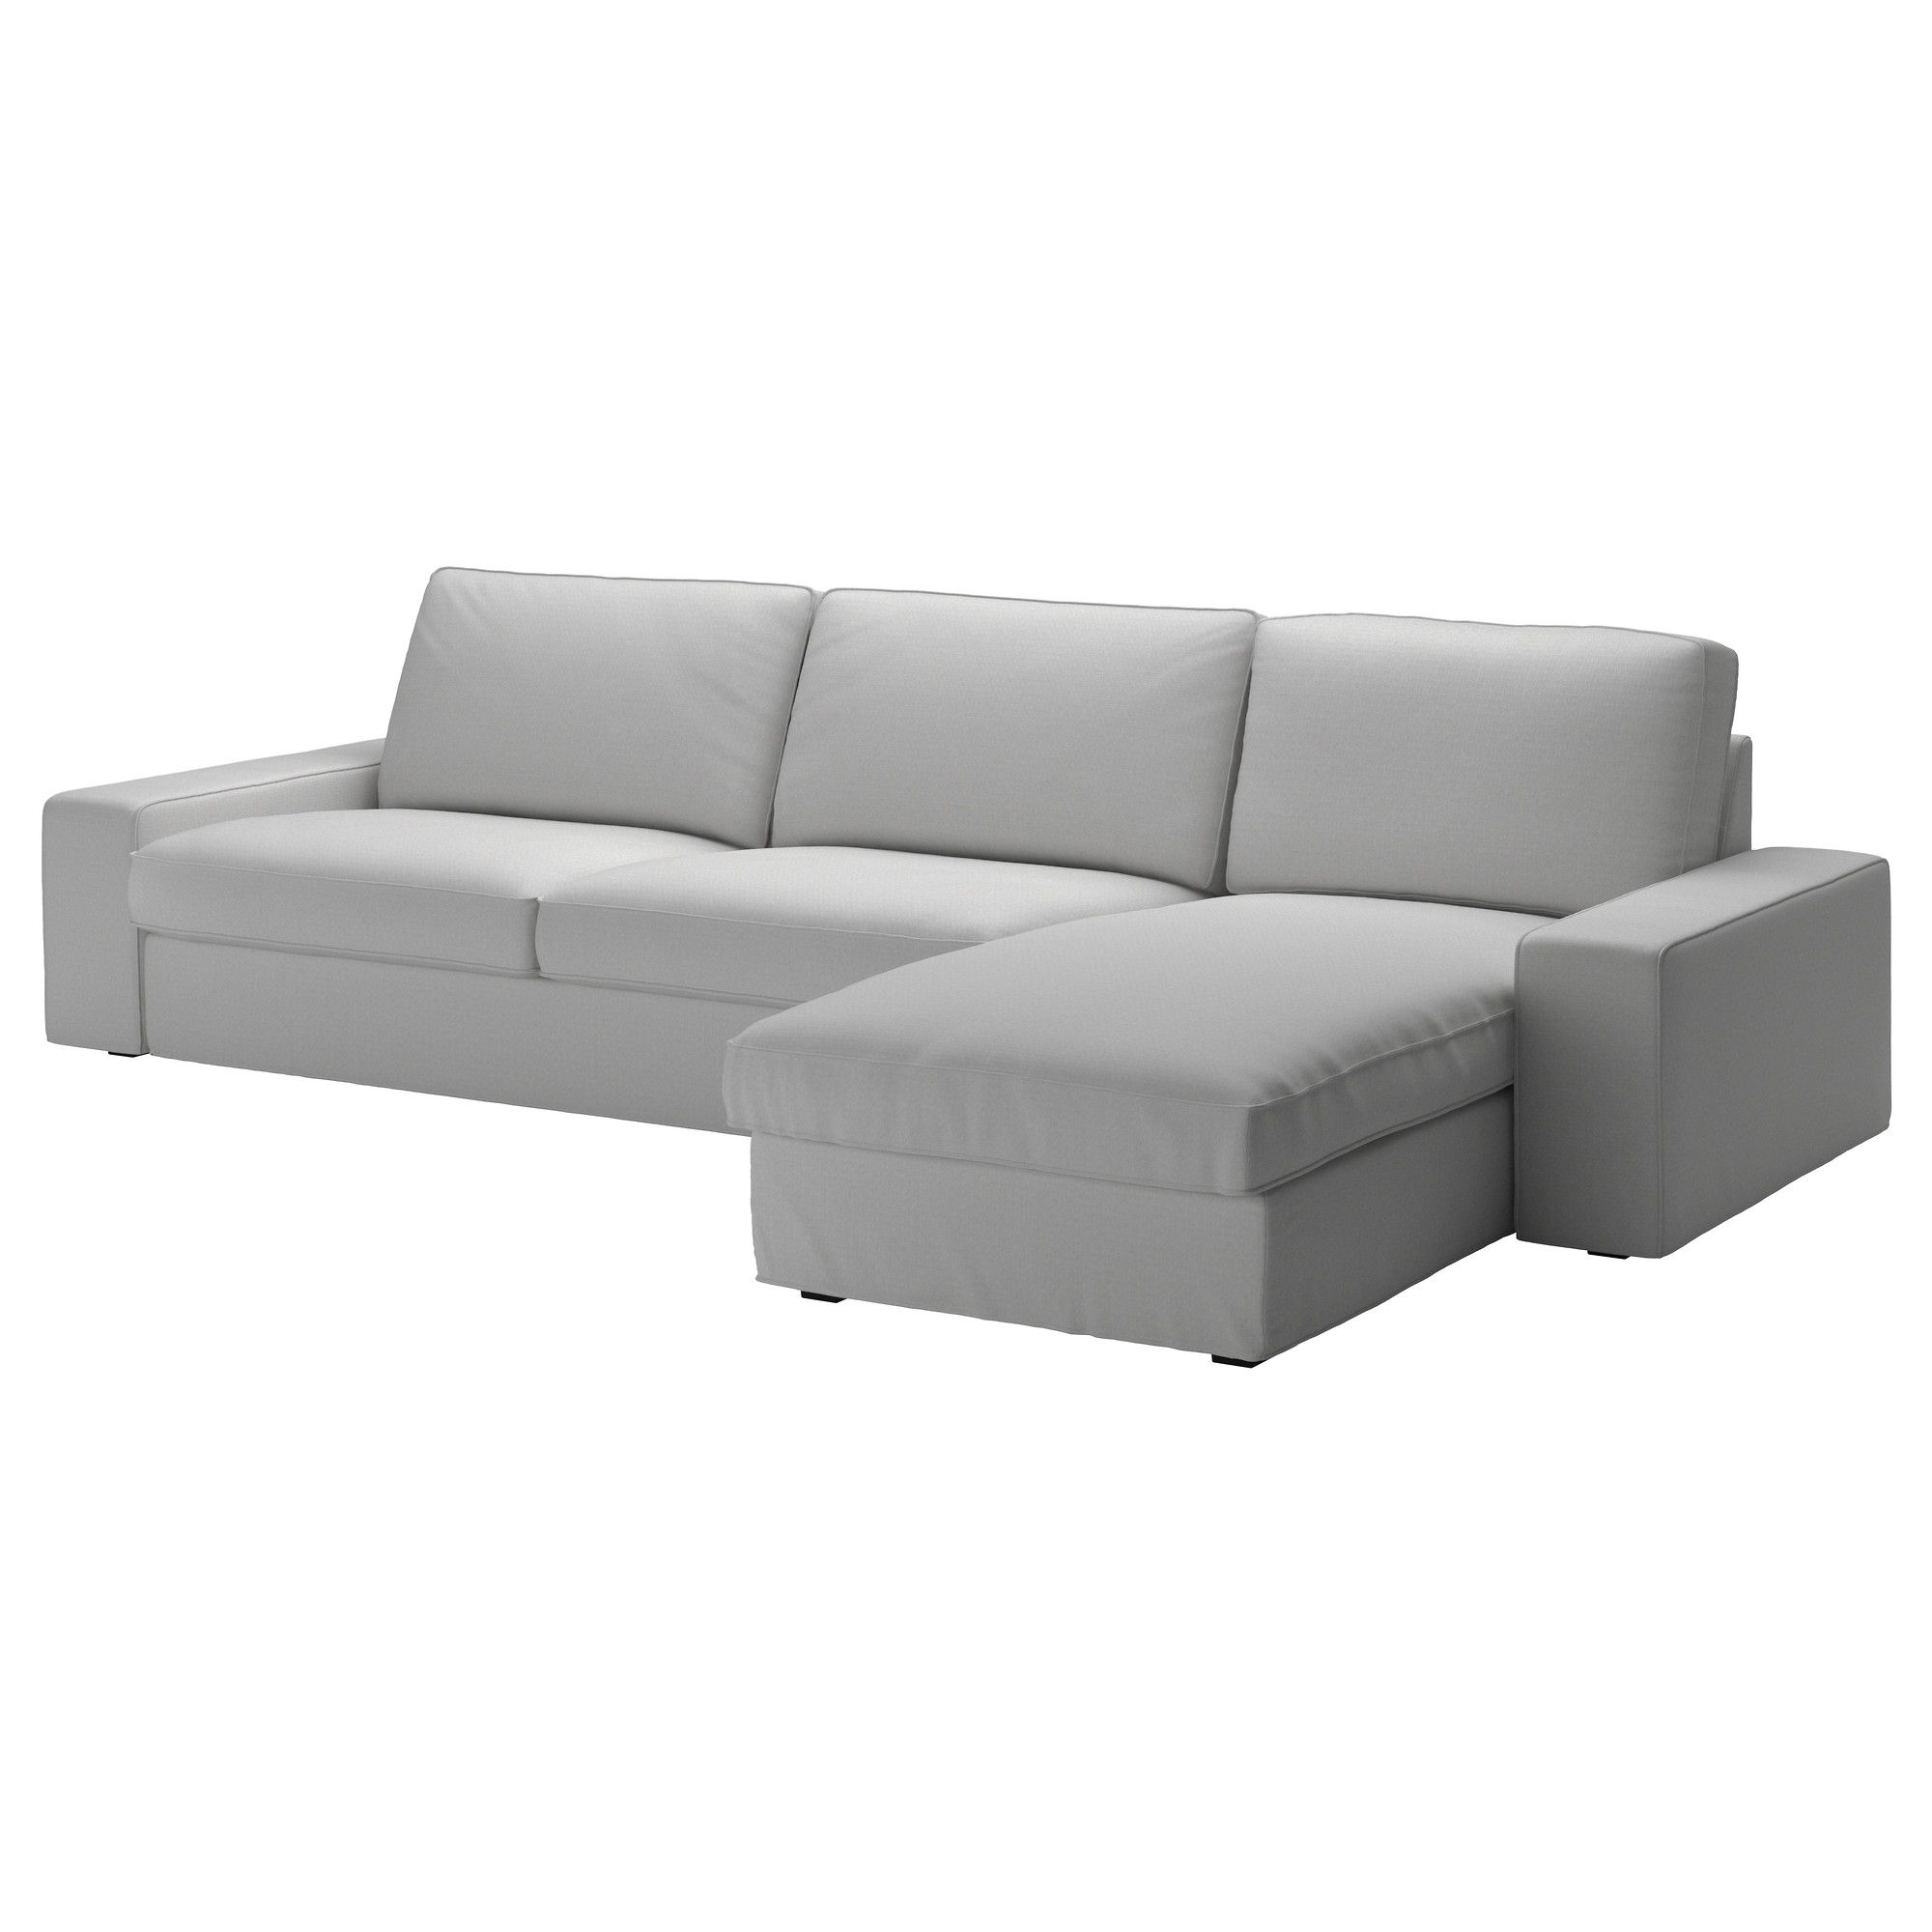 Sectional Sofa Connectors Canada: KIVIK Sectional, 4-seat Orrsta With Chaise, Light